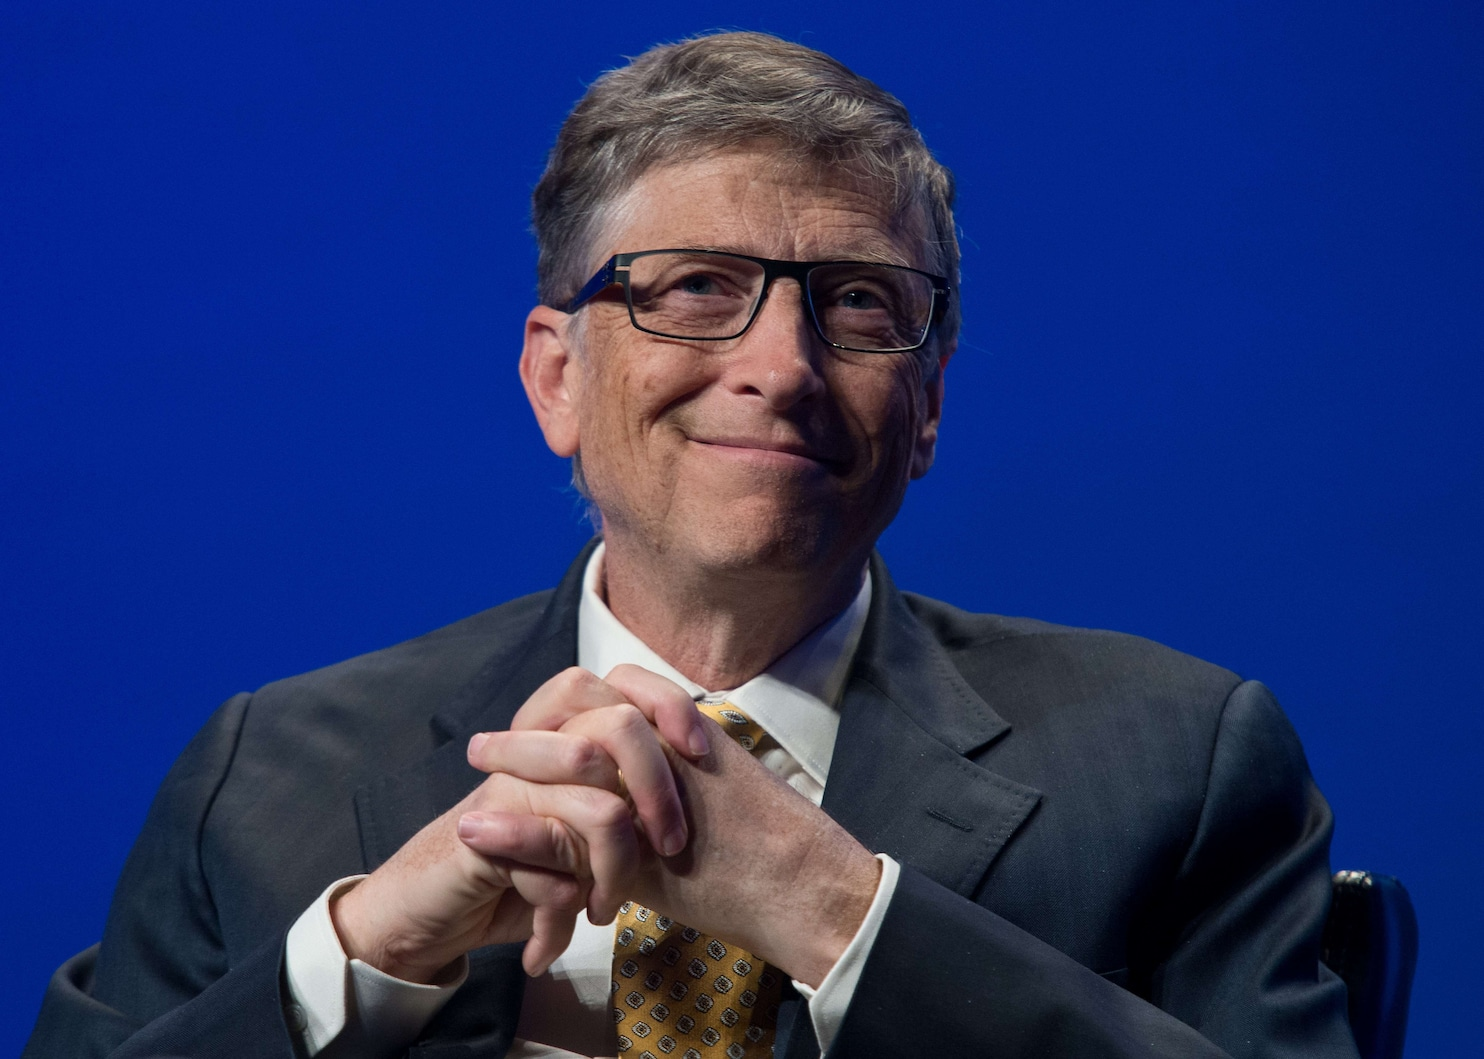 Bill Gates Calls Teachers Defend Common Core